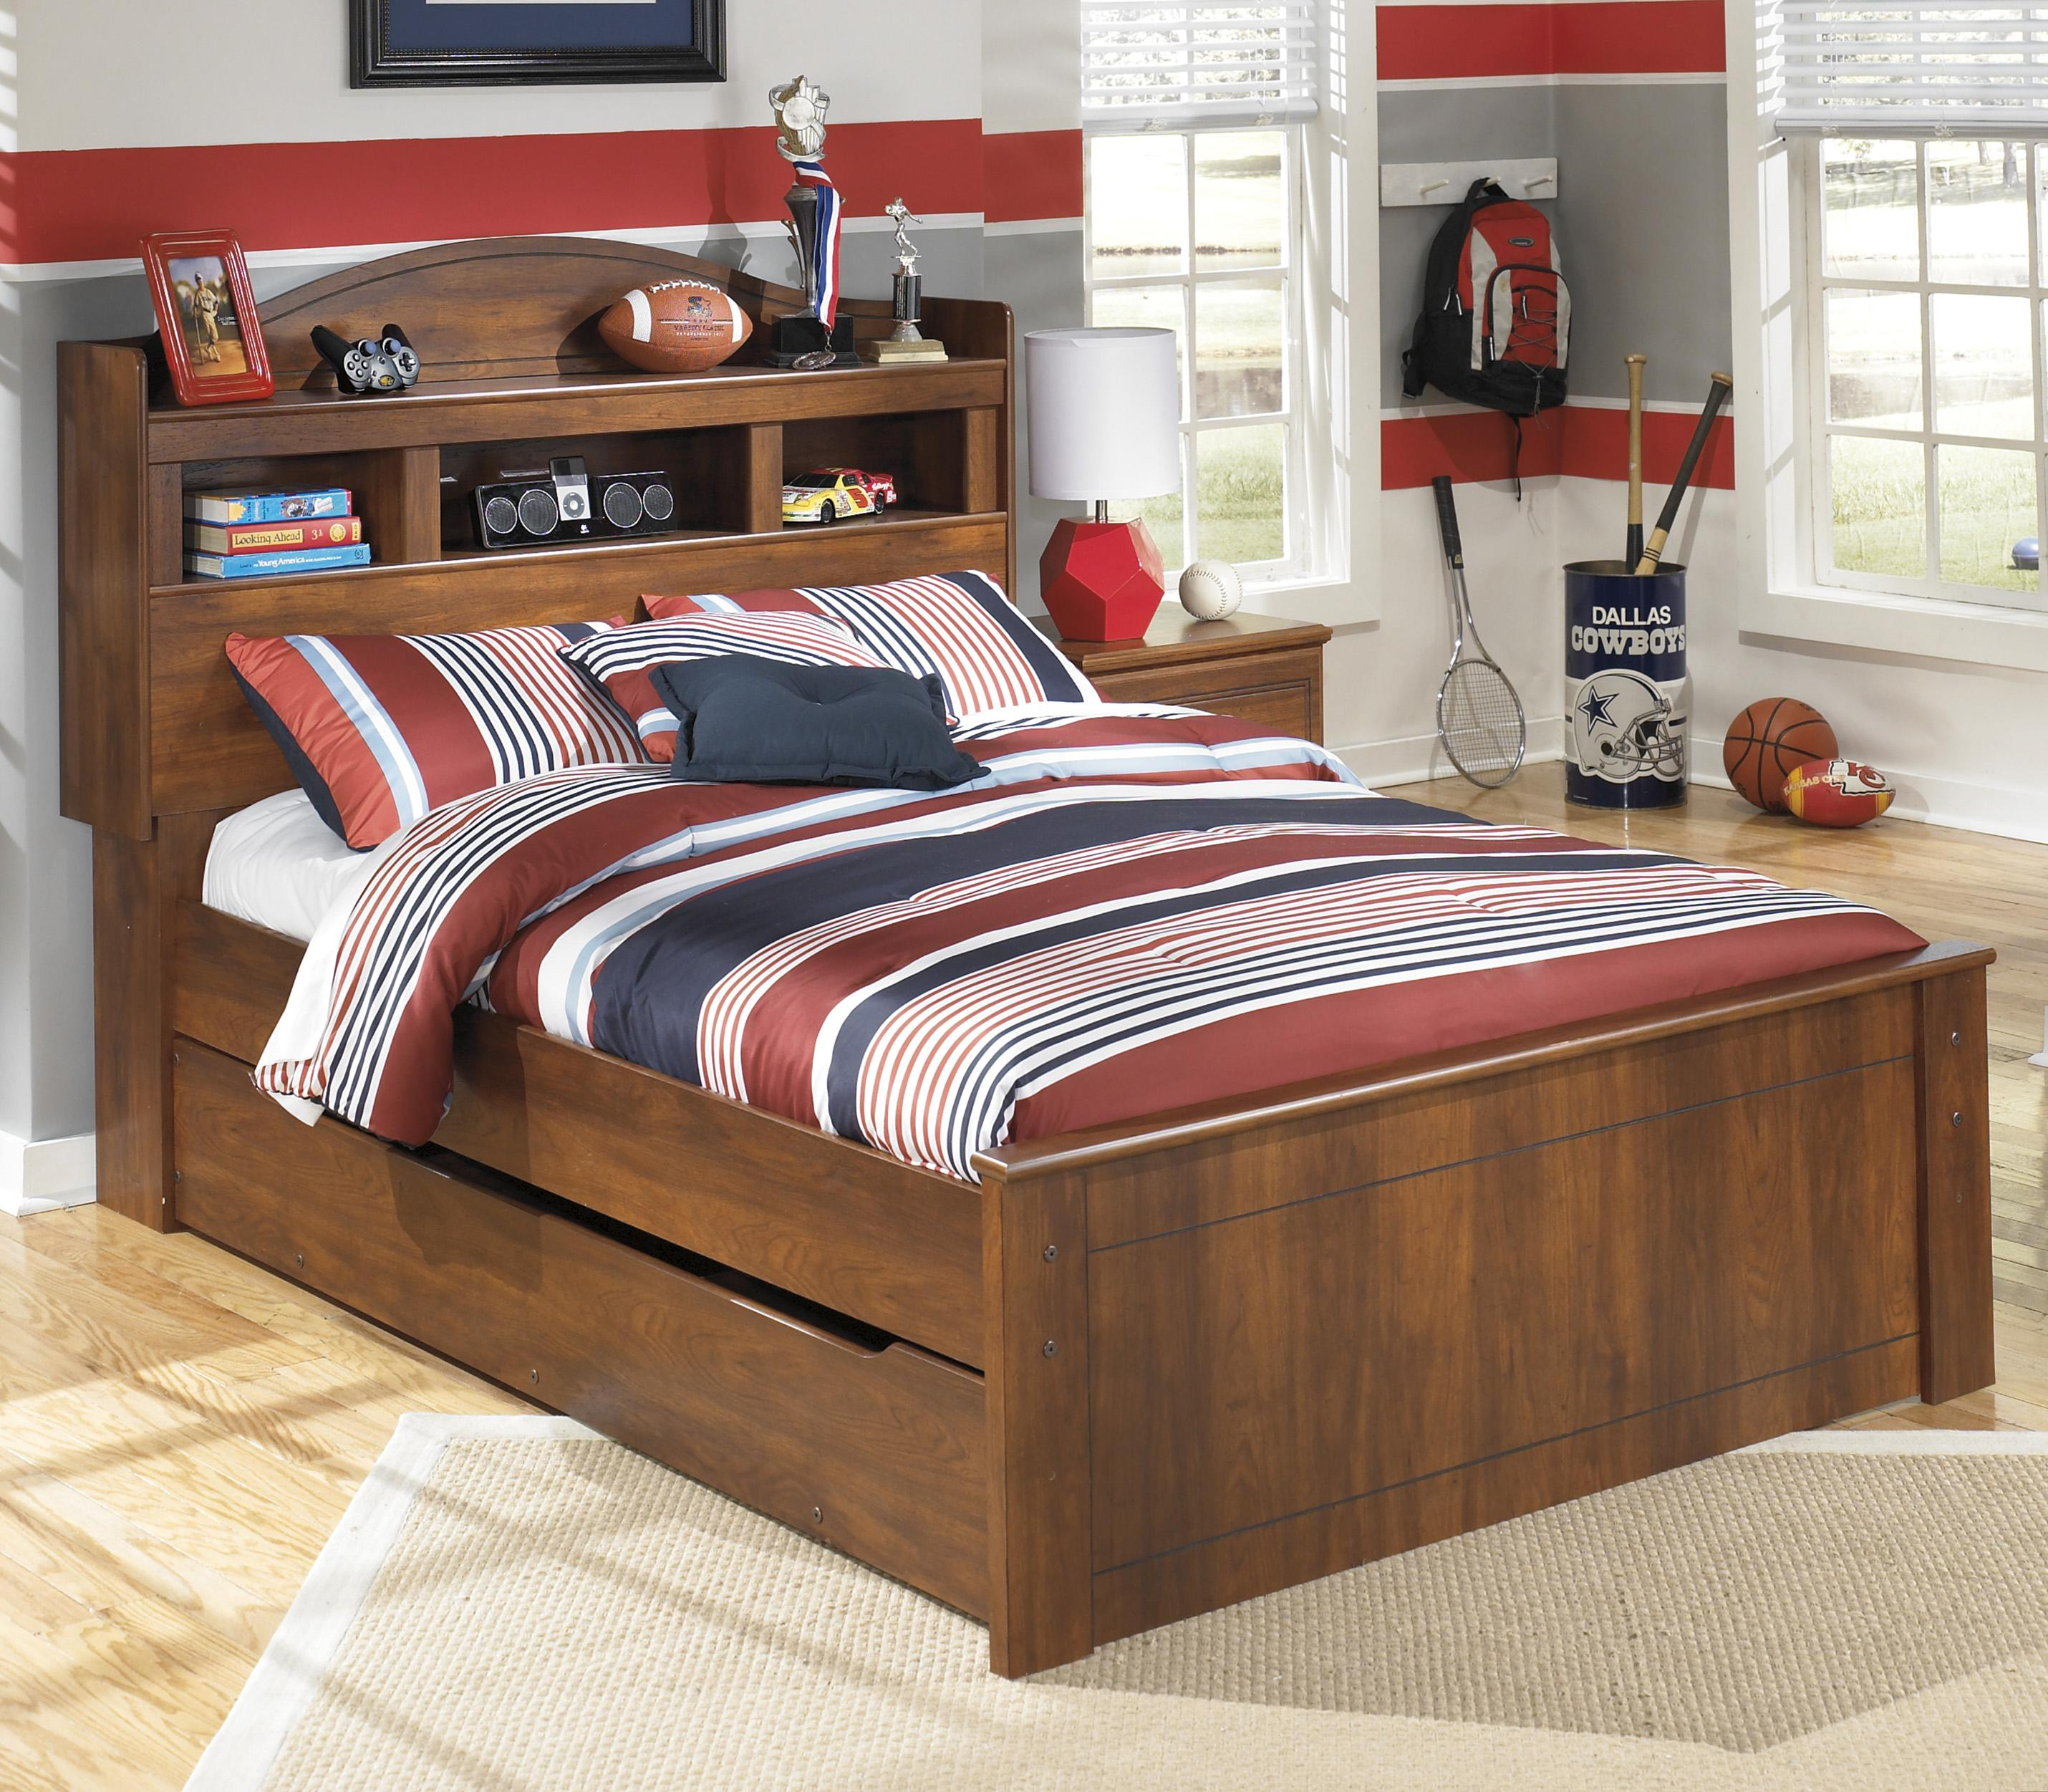 queen products bookshelf bed item contemporary coaster number beds storage with briana